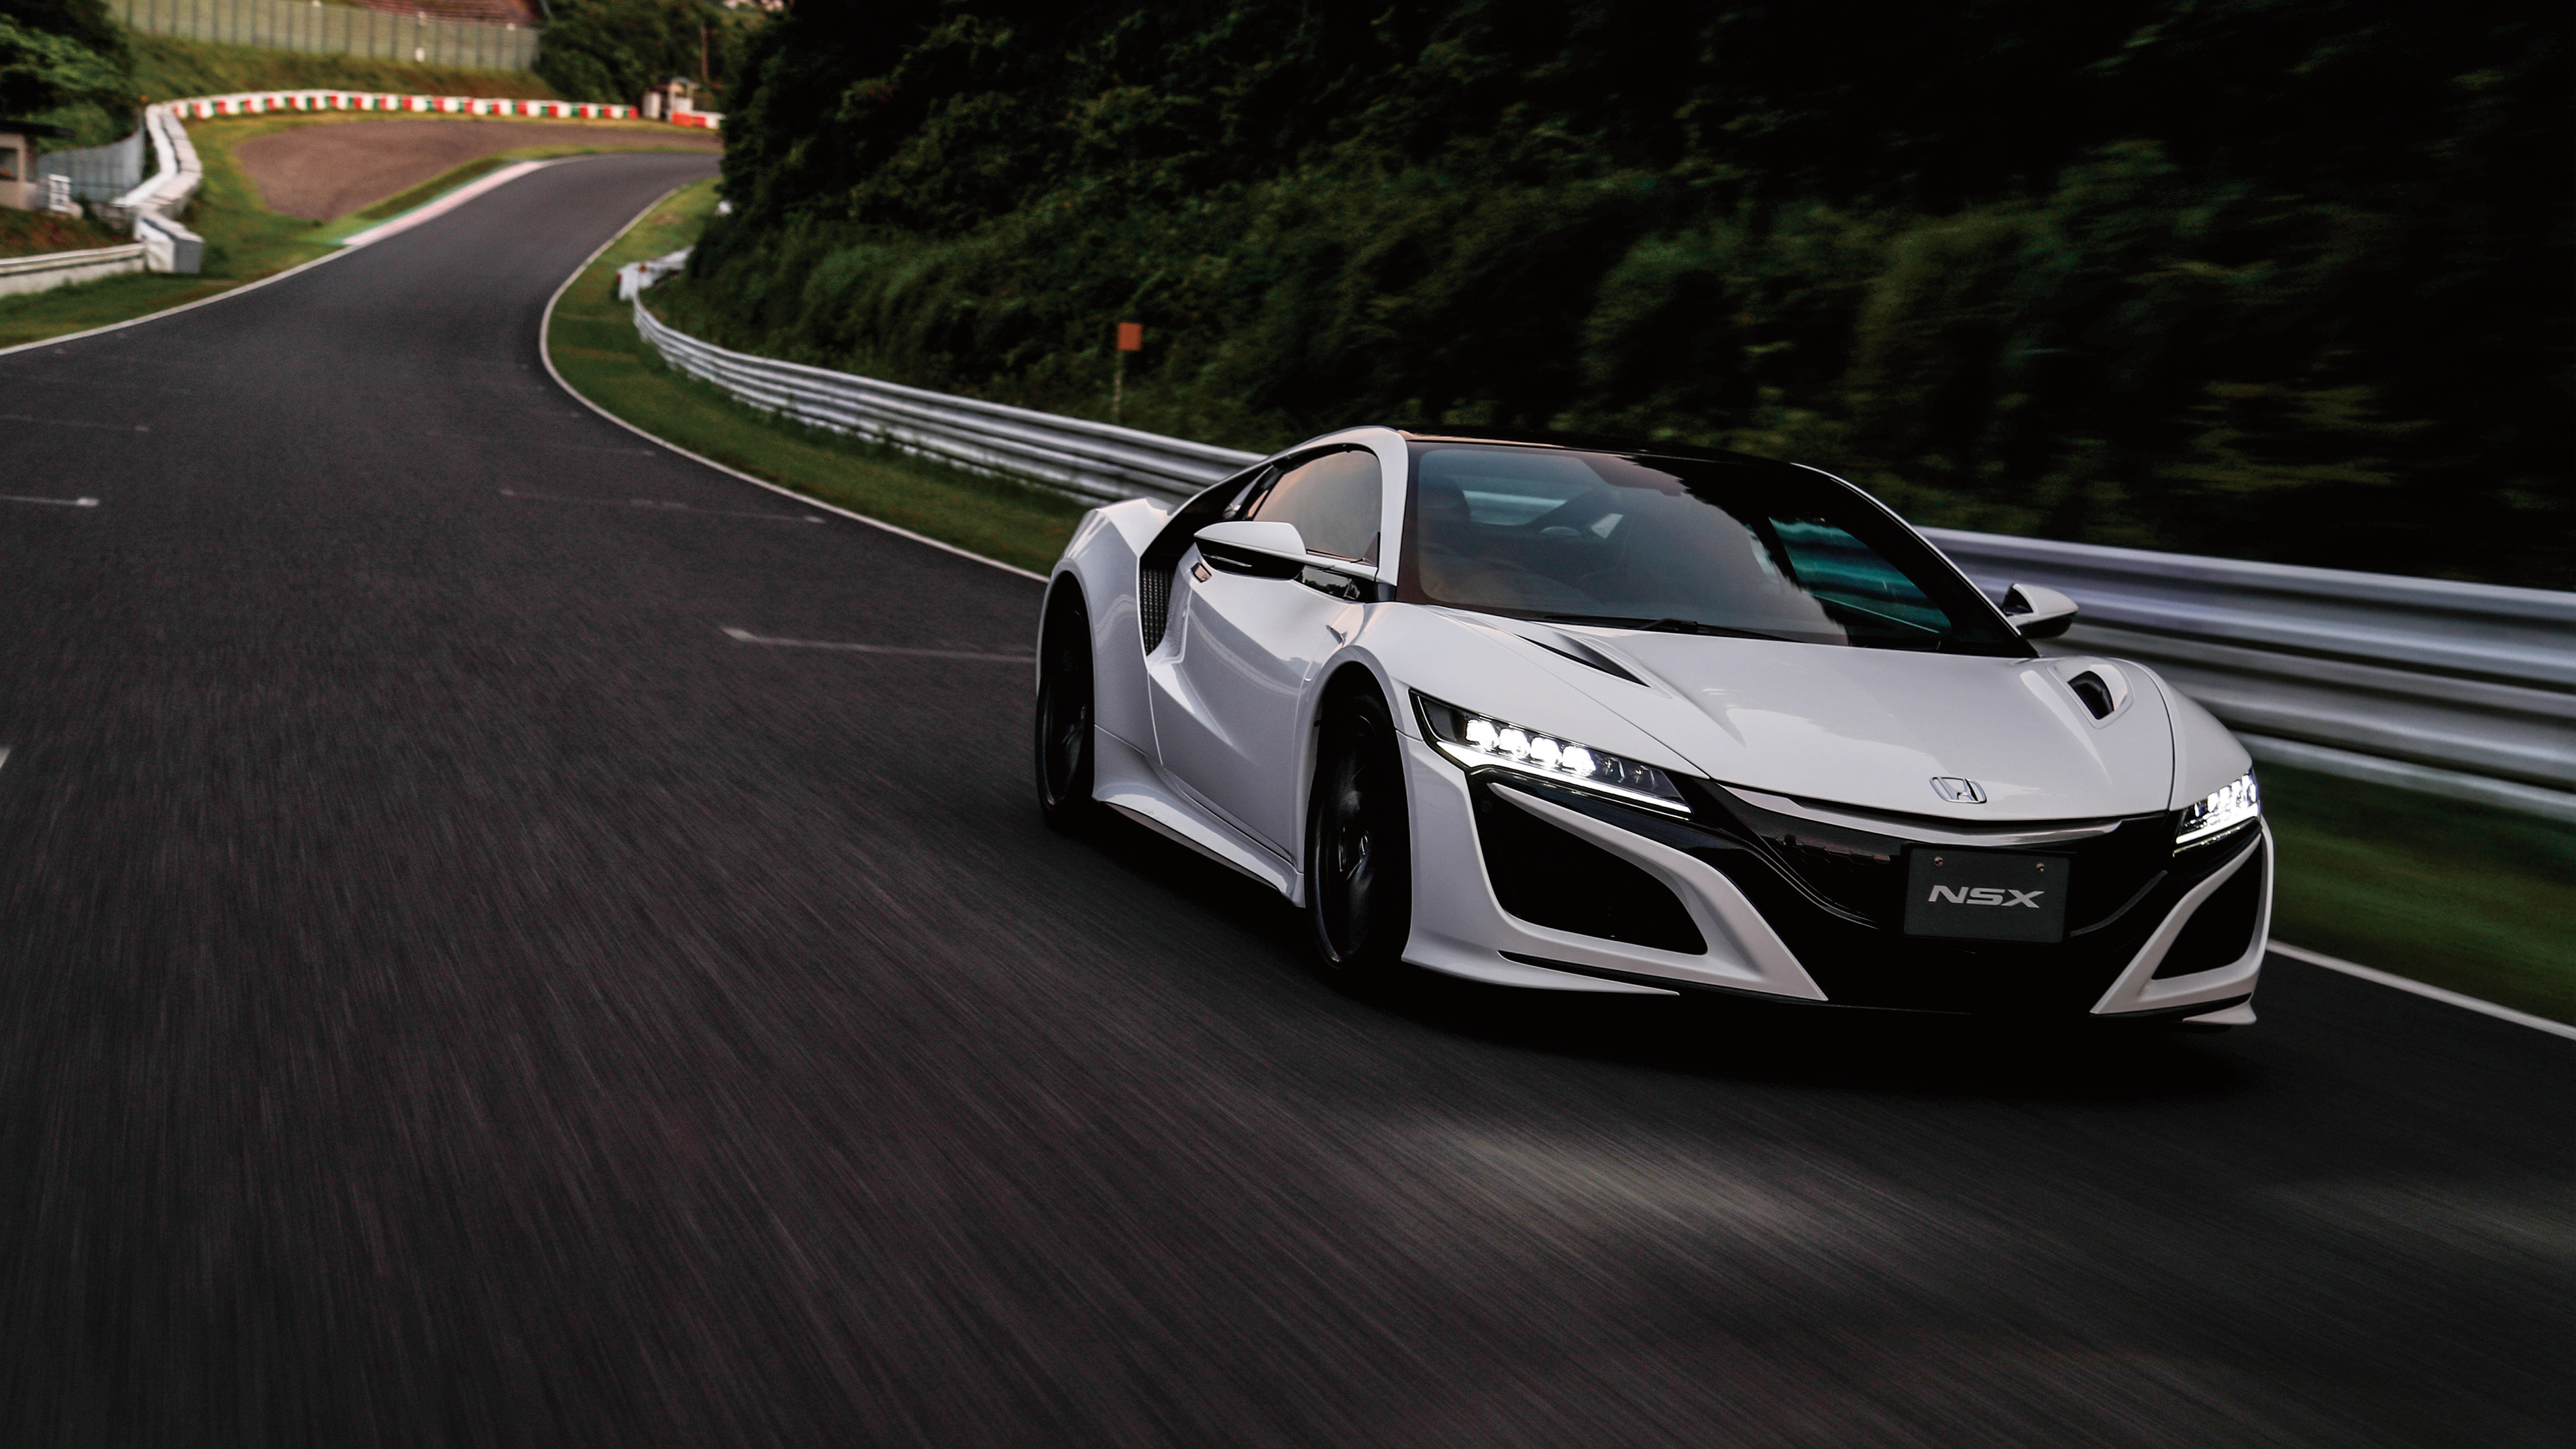 Honda NSX 4K Supercar Wallpaper